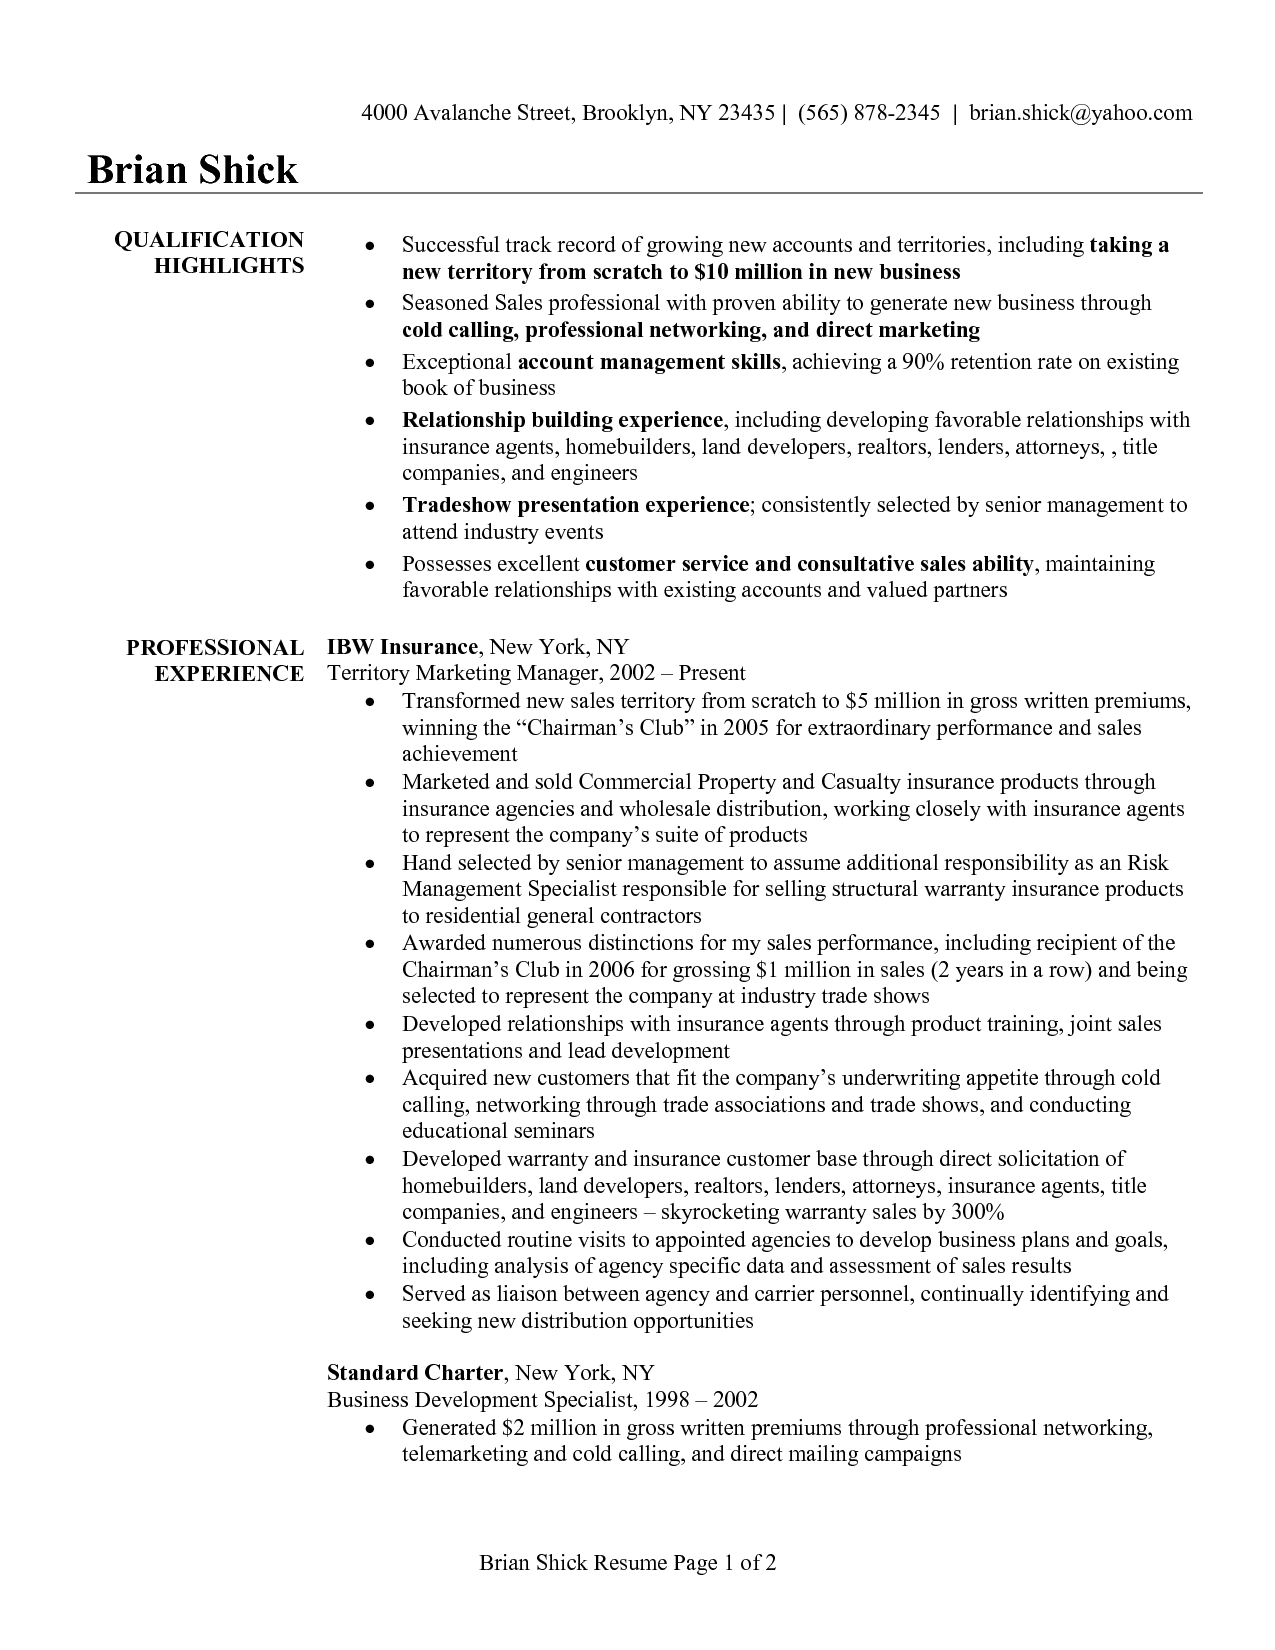 Insurance Broker Resume Life Insurance Agent Resumes Http Jobresume